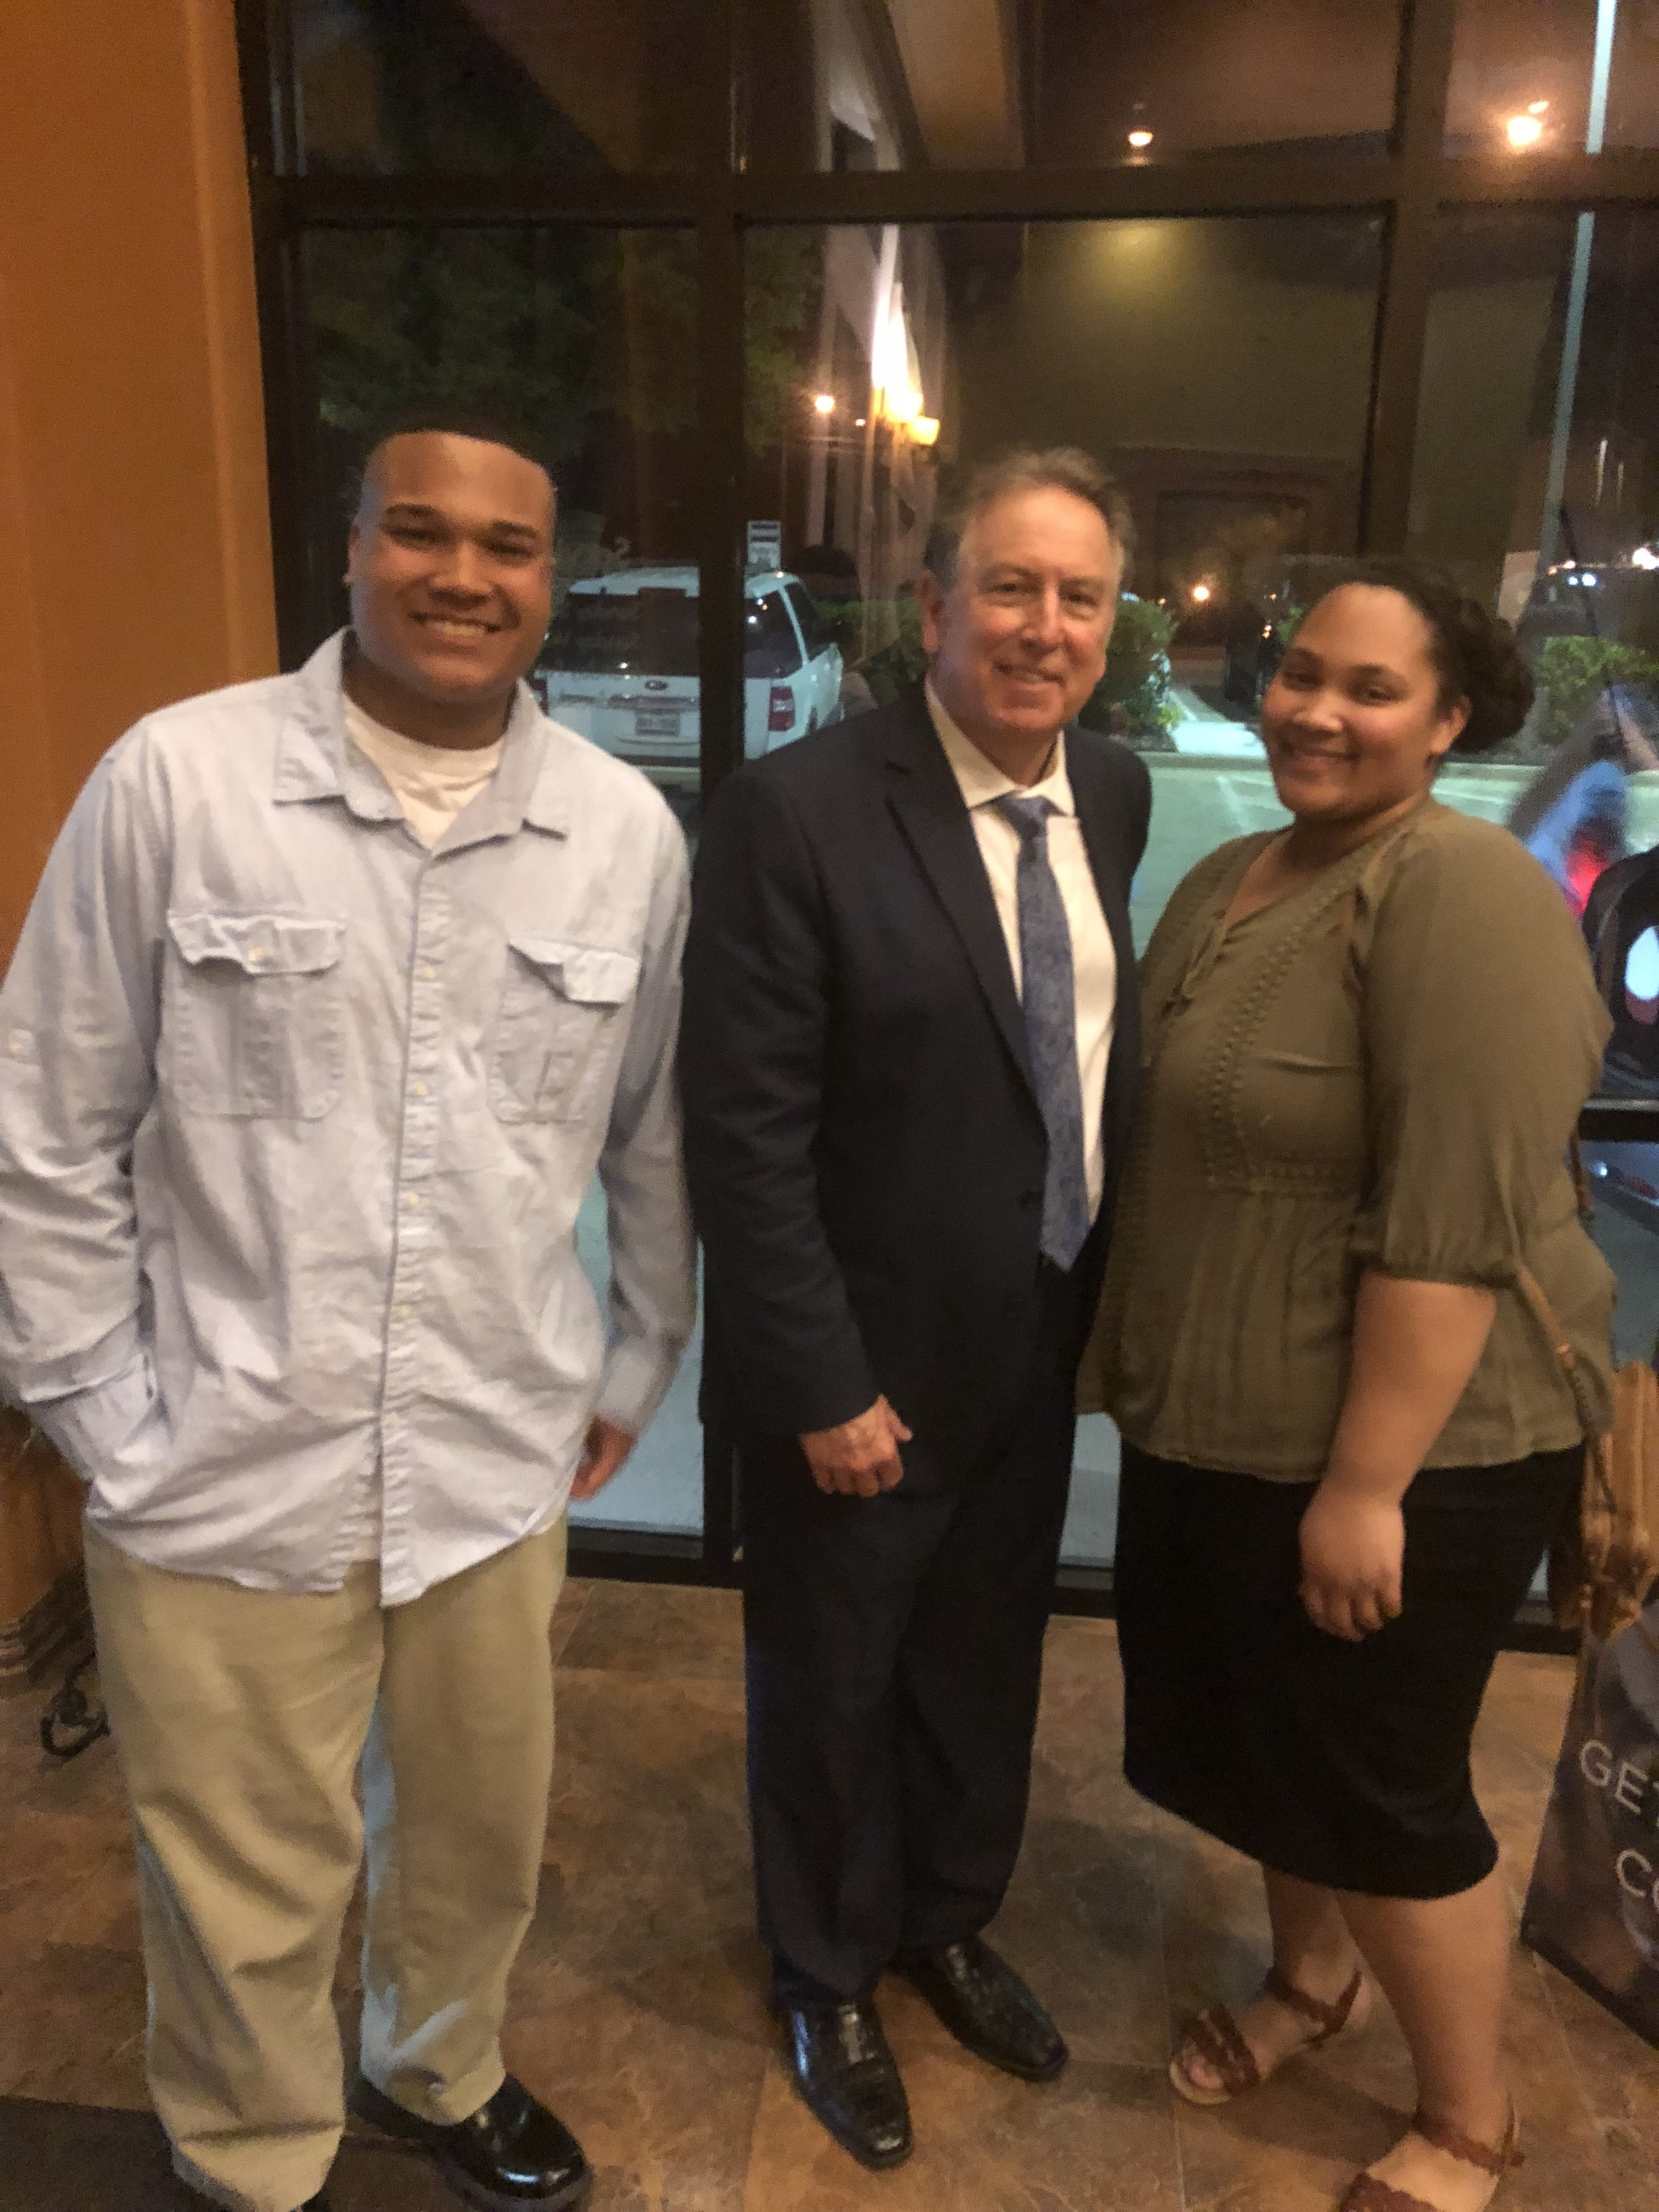 Corinth, Texas; Brother and sister at Victory Life Church prayed prophetically for at same service.